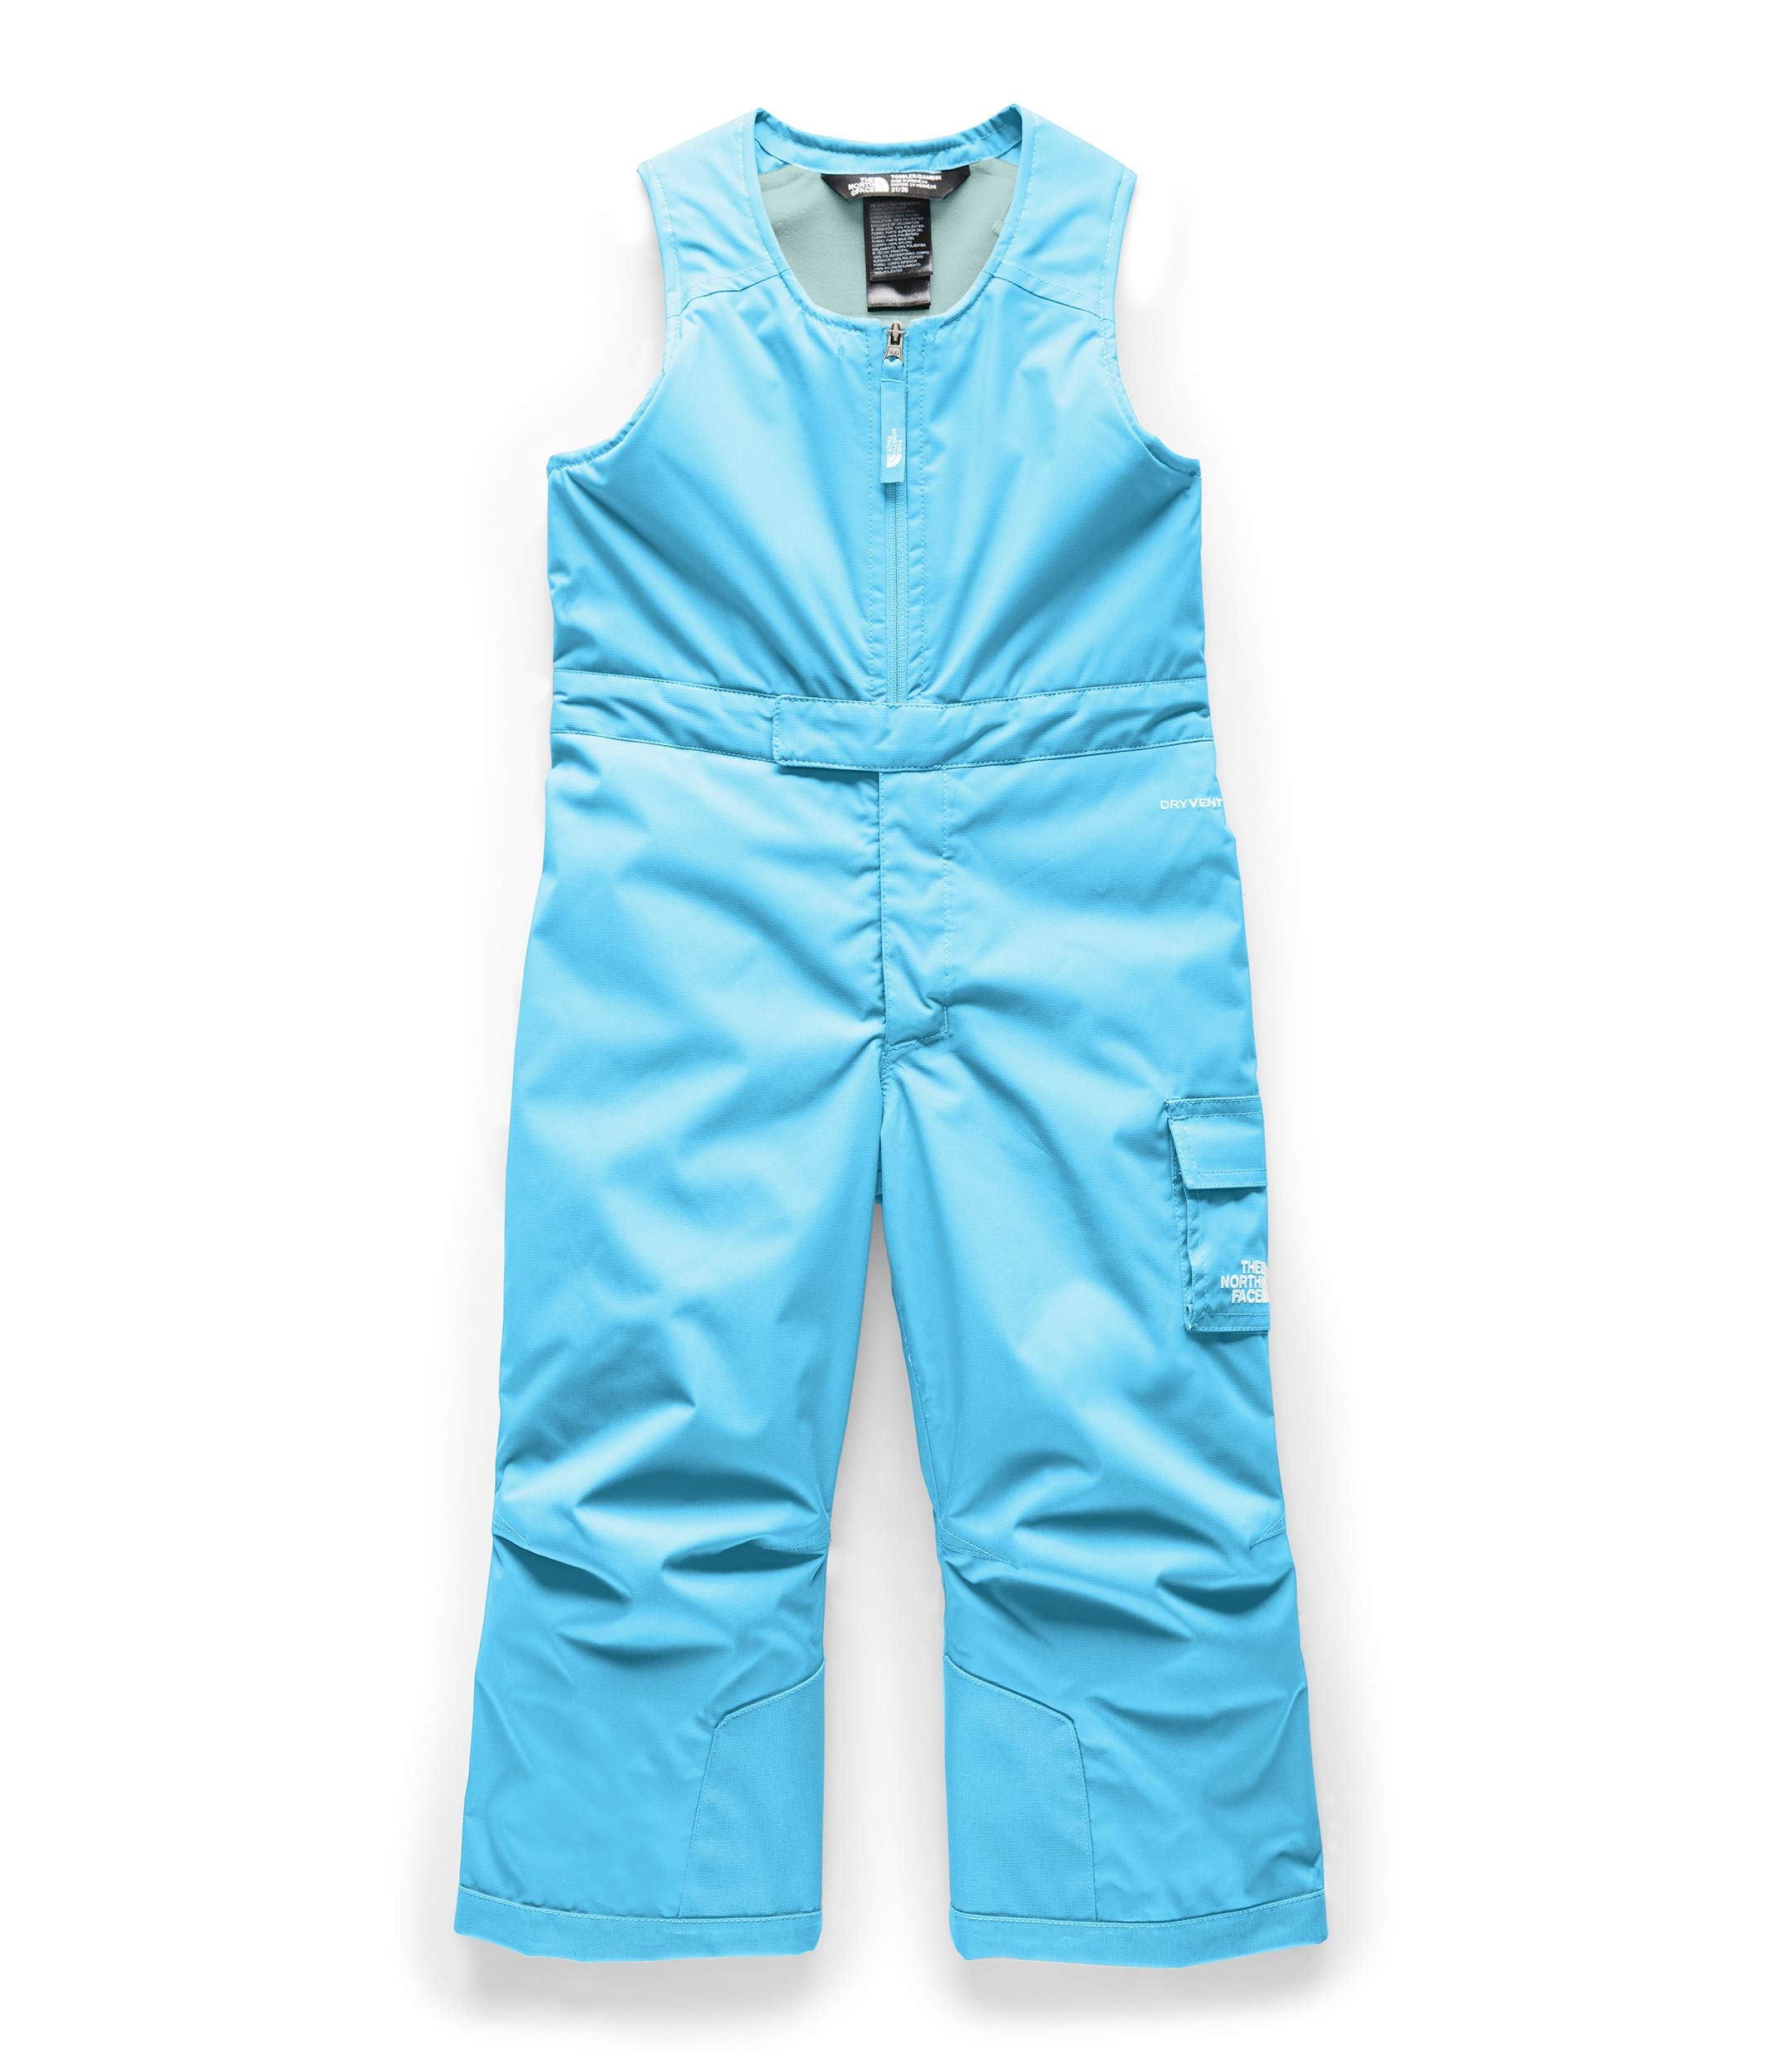 The North Face Toddler Insulated Bib Turquoise Blue by The North Face